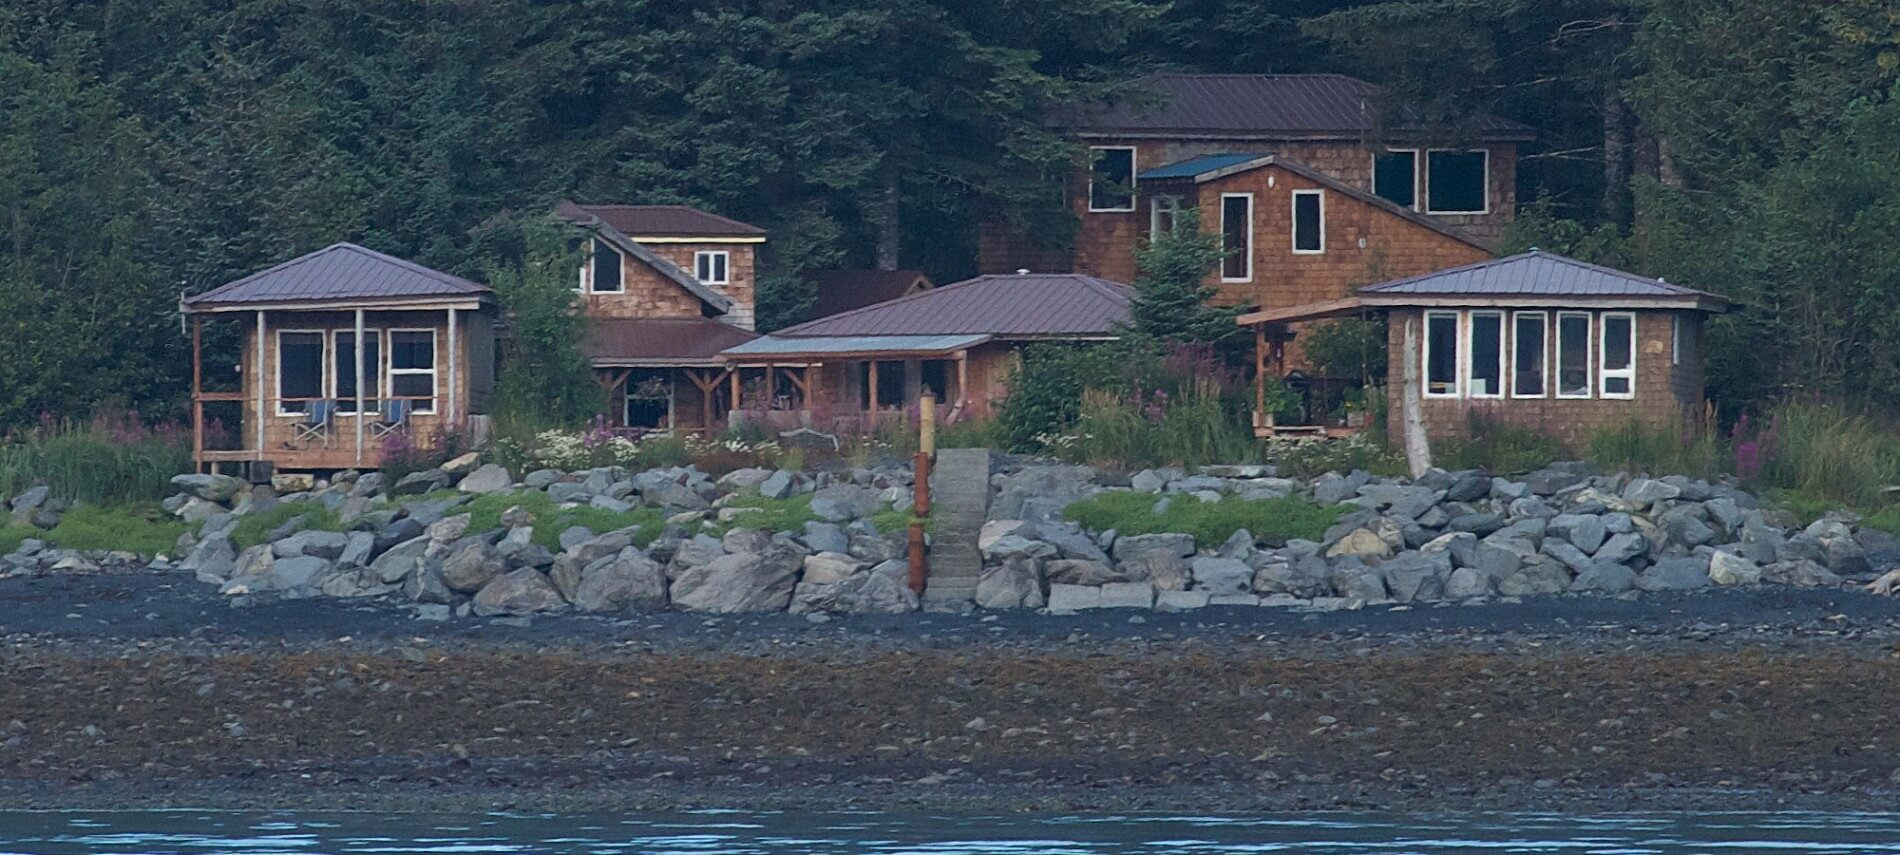 View of a rocky shore with five small brown cabins nestled among tall evergreen trees